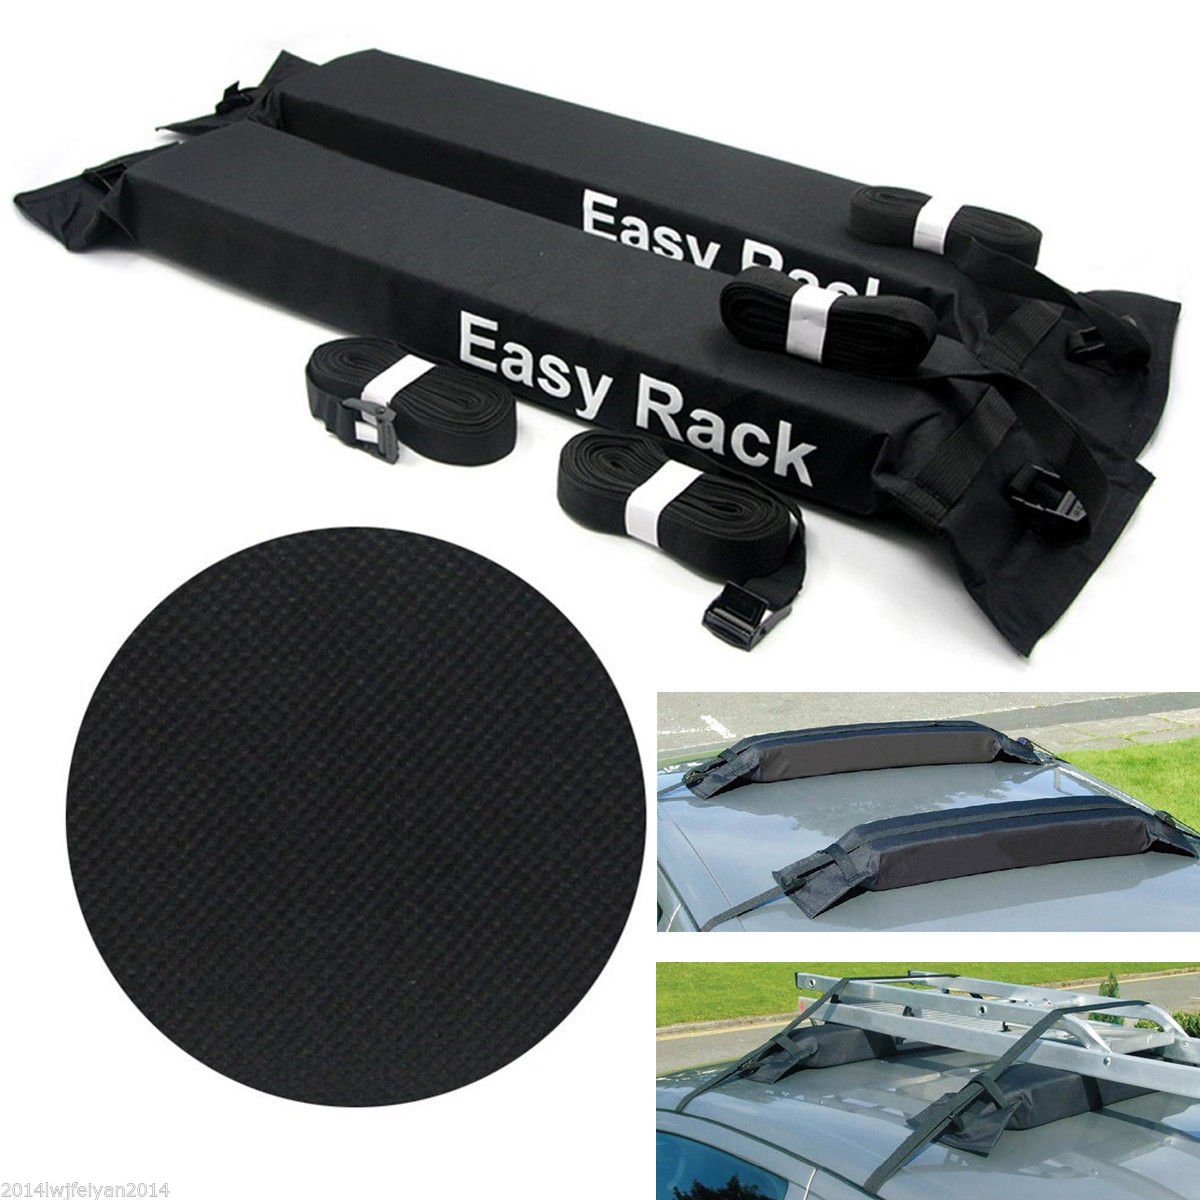 Aliexpress.com Buy Universal Car Roof Top Carrier Bag Black Storage Luggage  For Travel 600D Oxford Cloth +PVC High Quality From Reliable Car Roof .